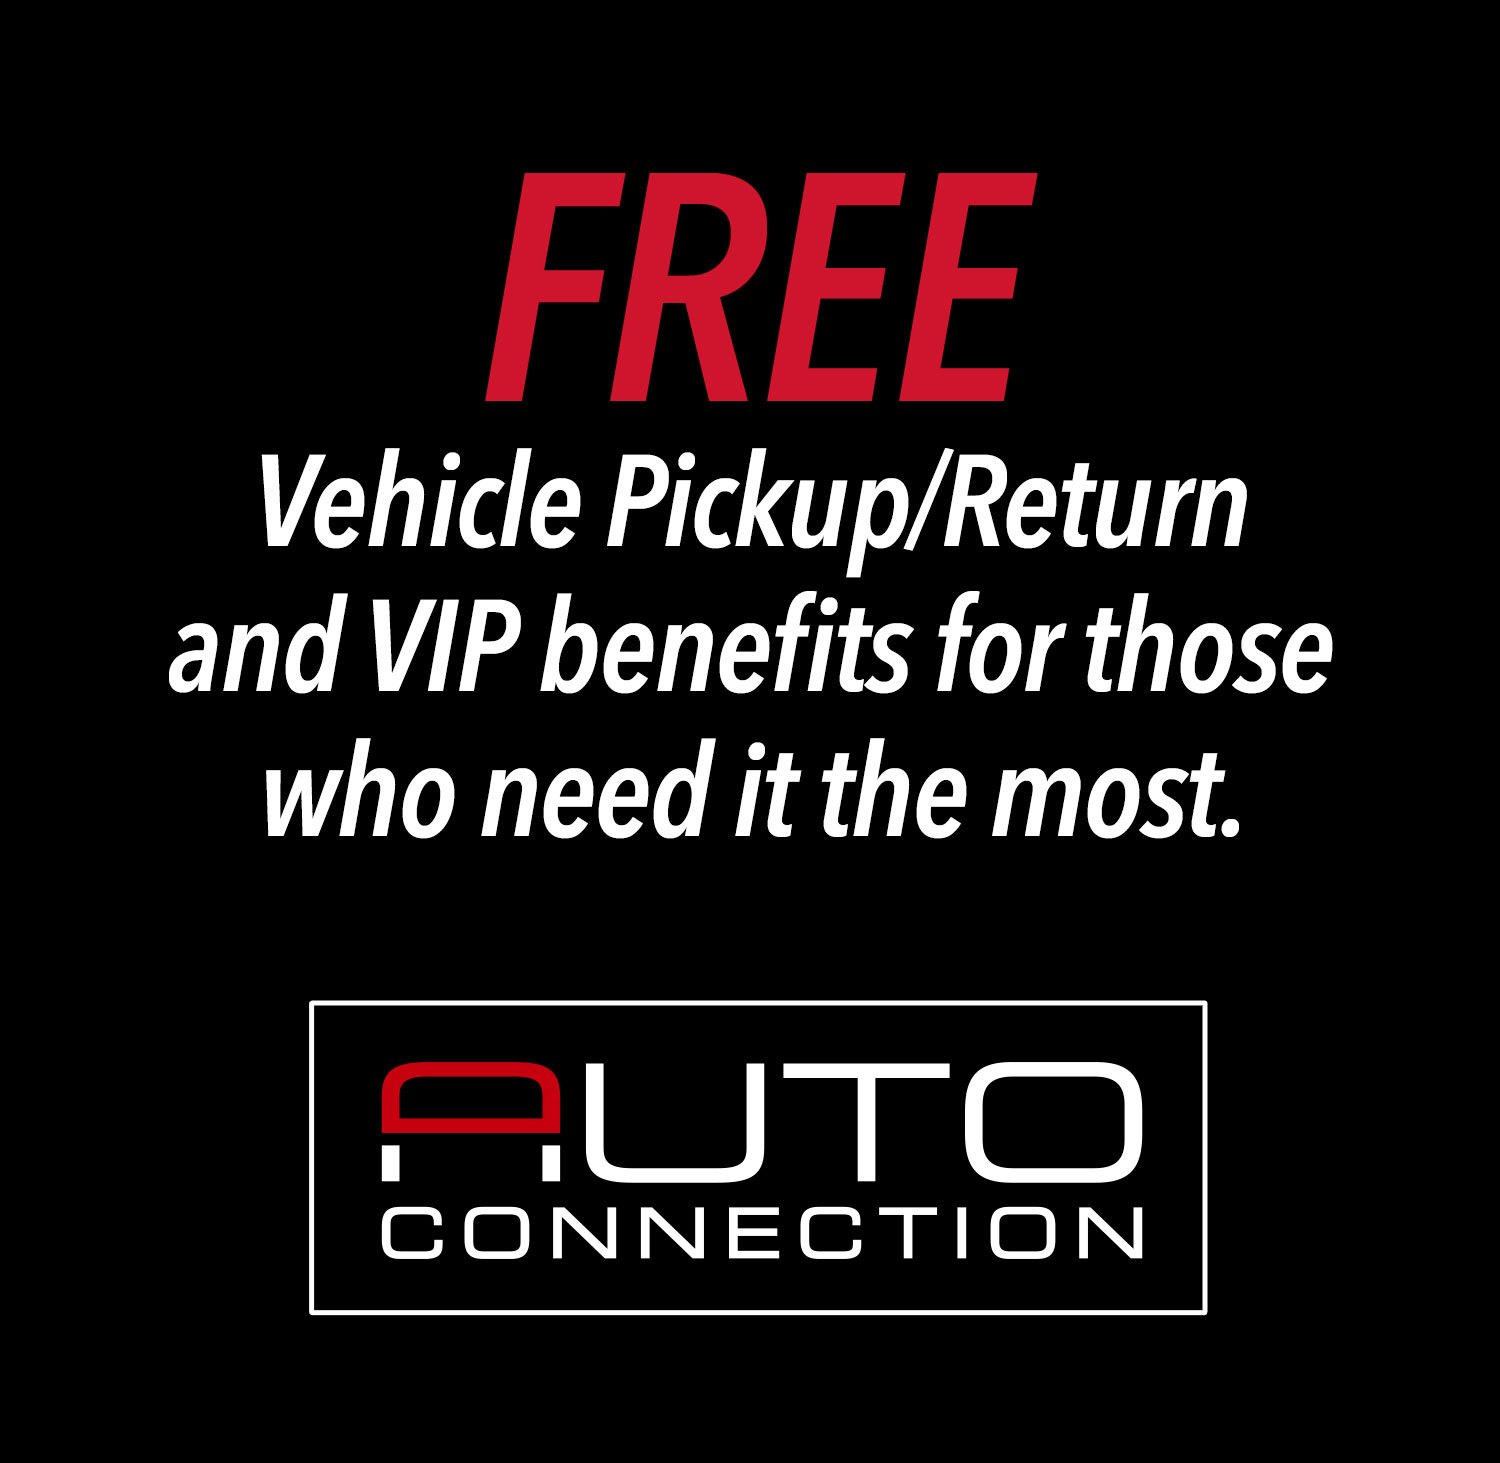 Free Vehicle Pickup/Return Service